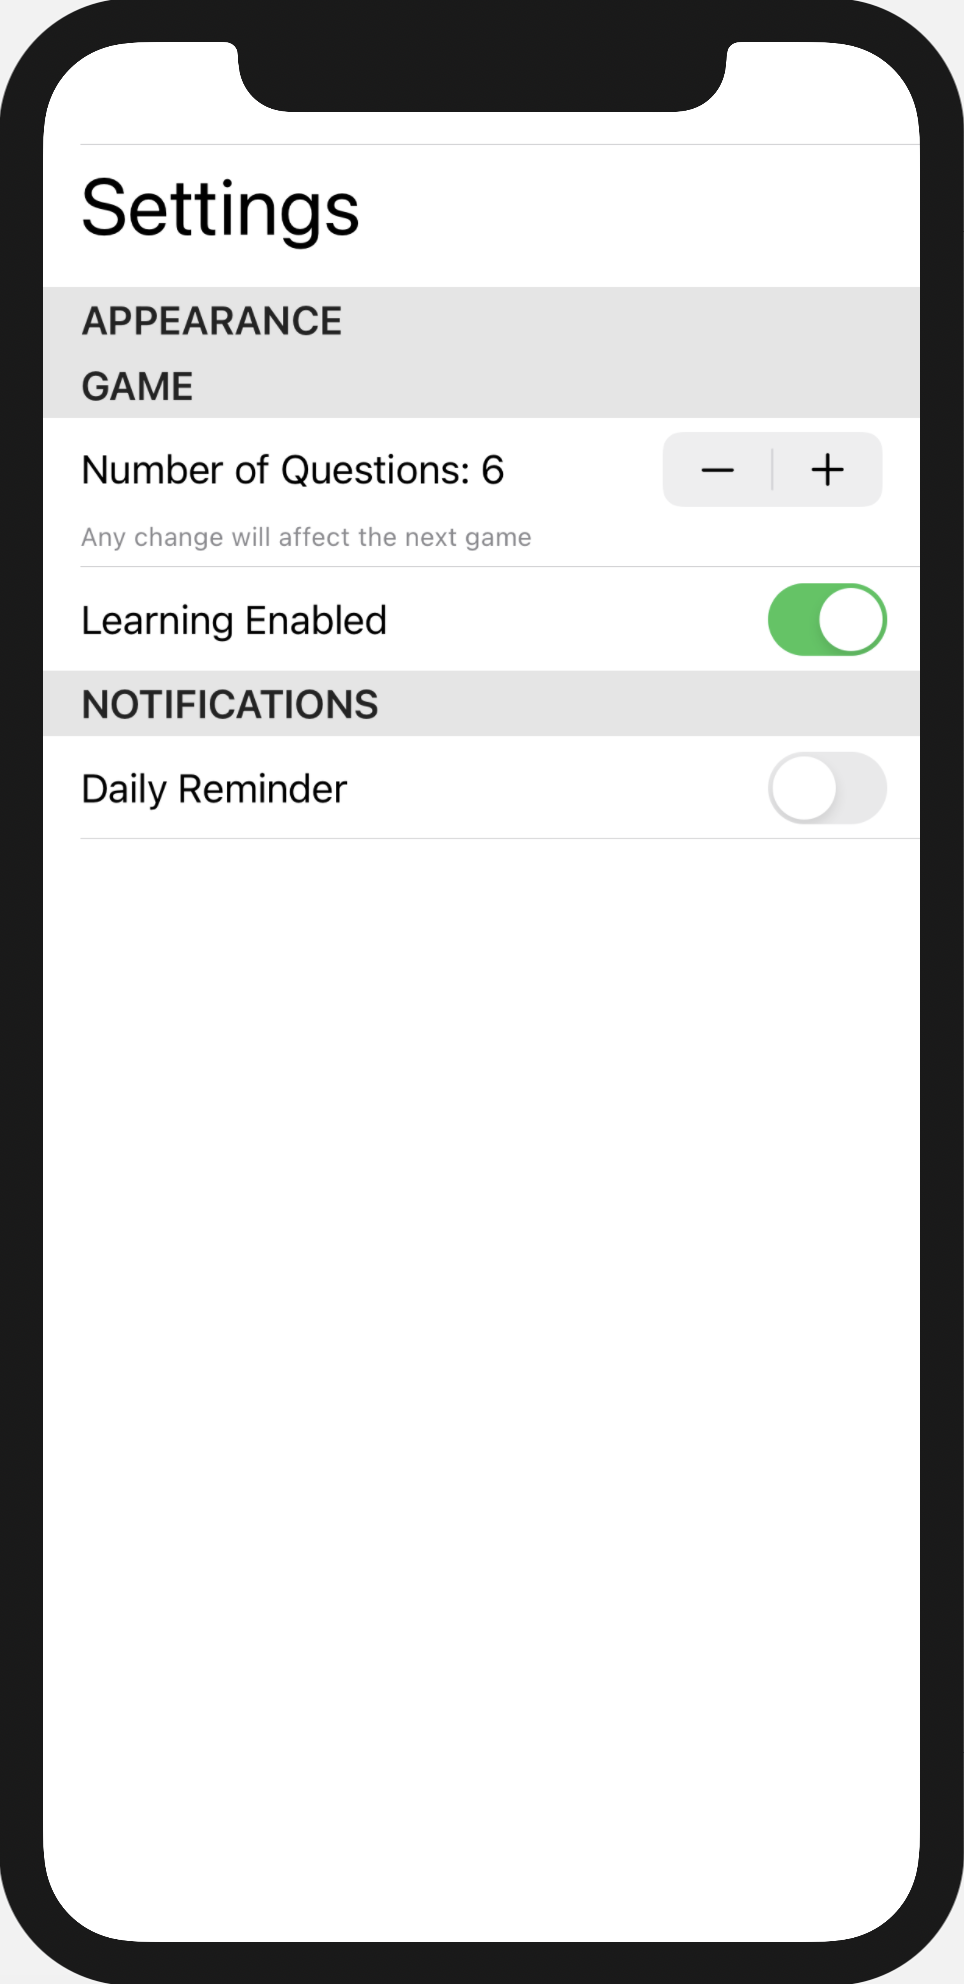 Notifications toggle